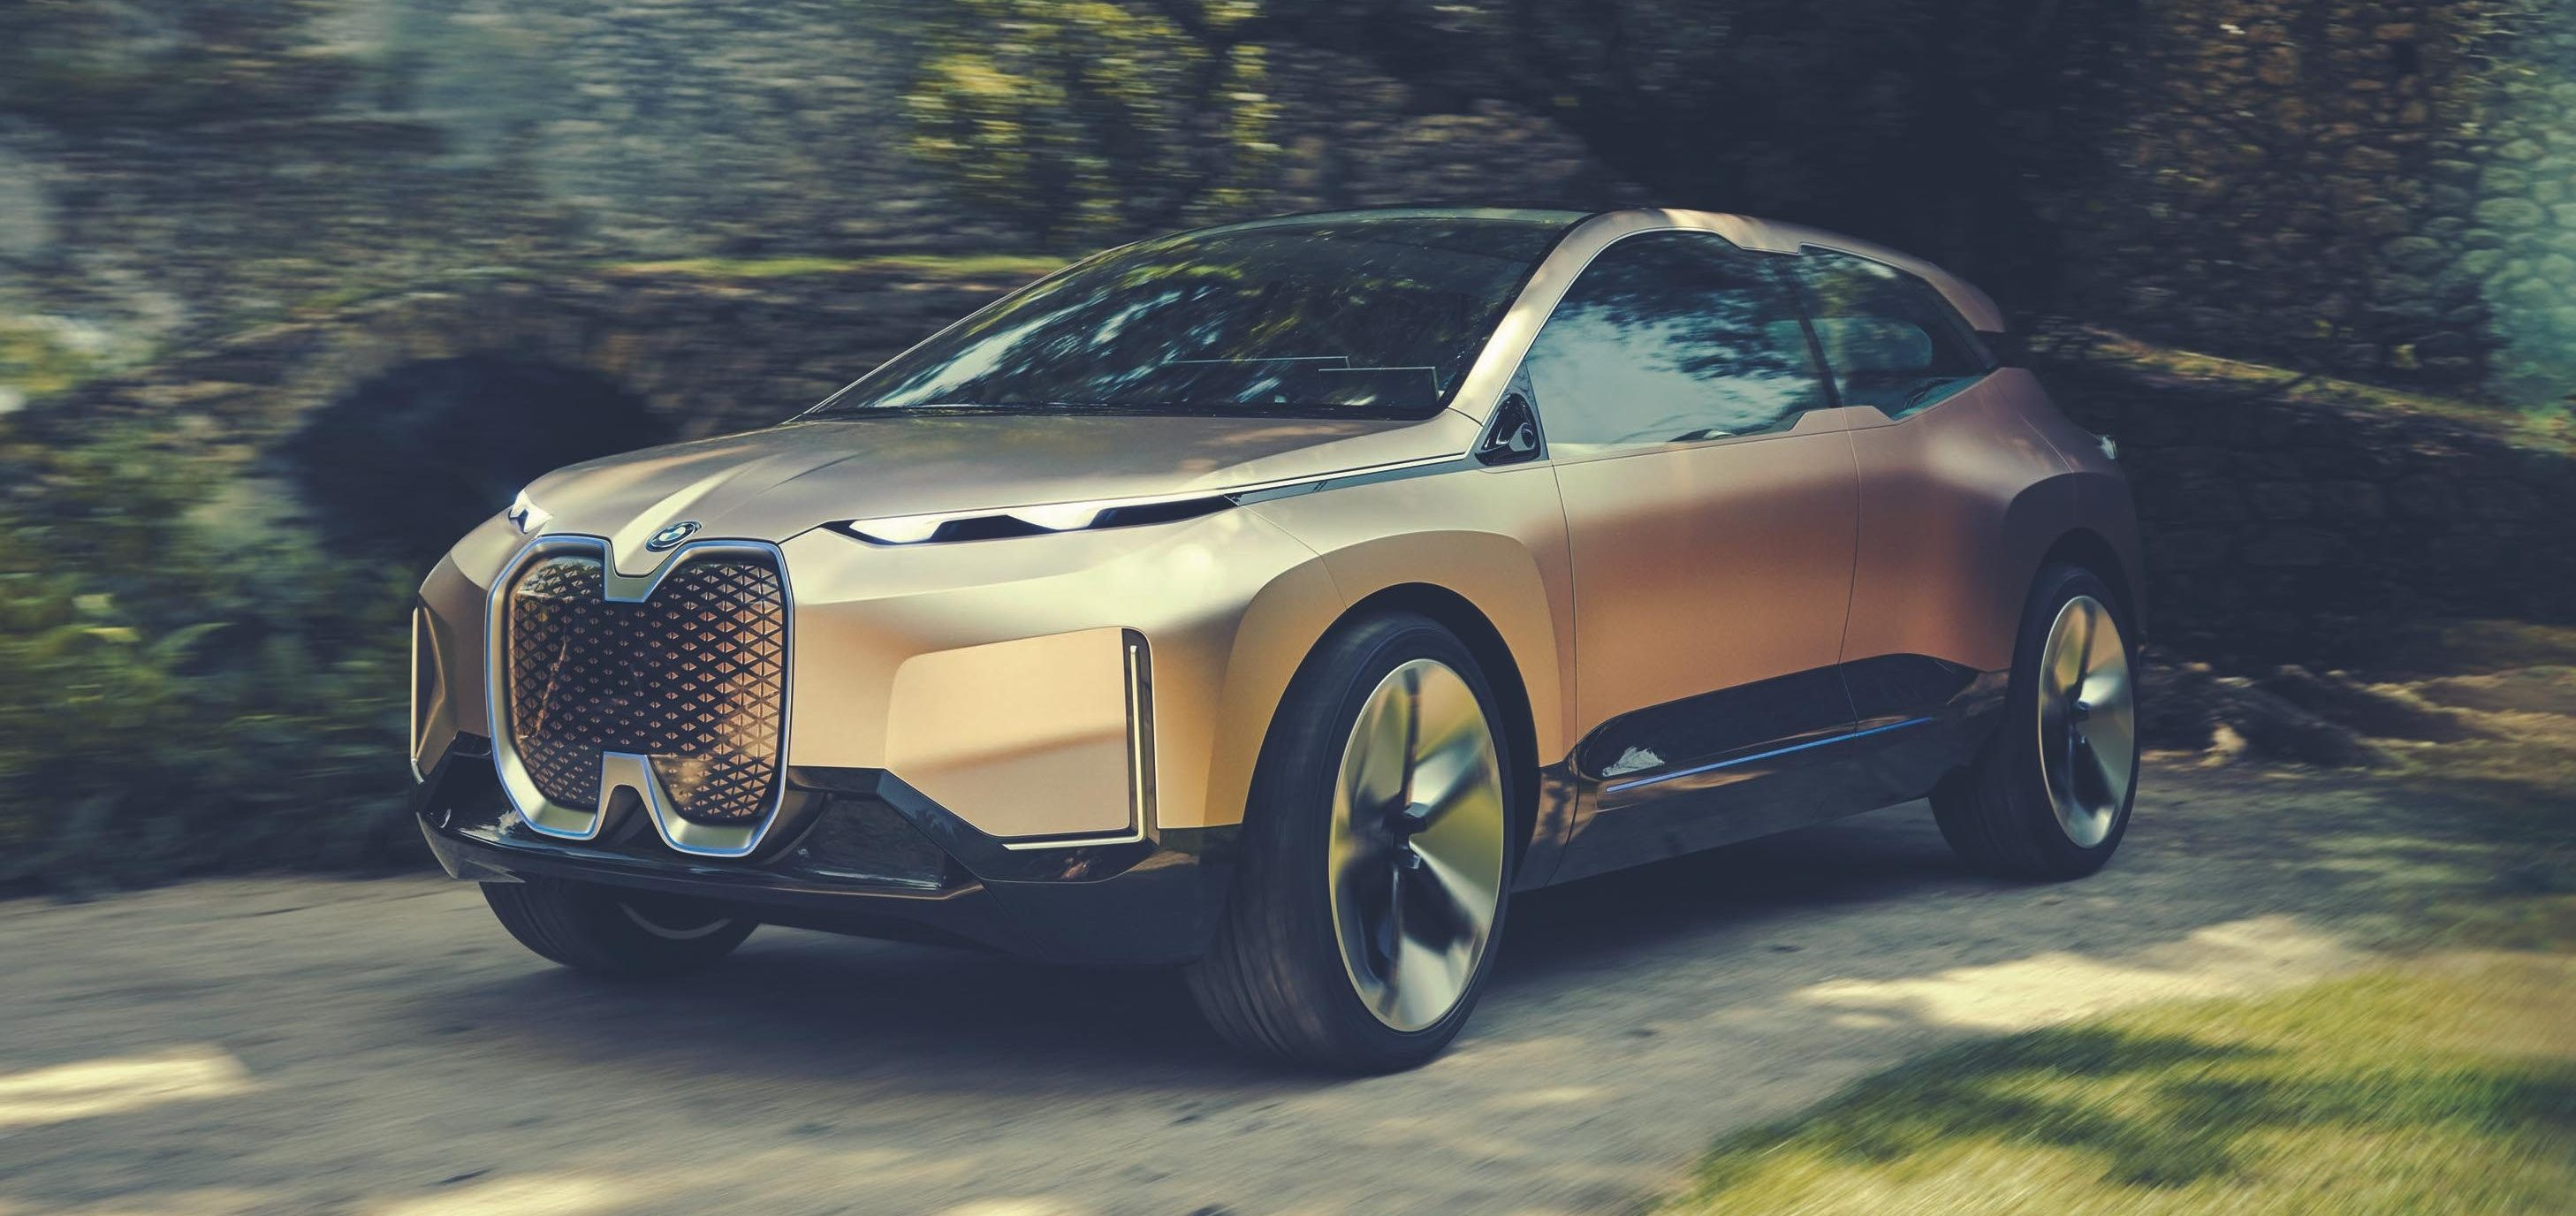 BMW New Car >> Bmw Releases New Images Of Inext Electric Car Prototype